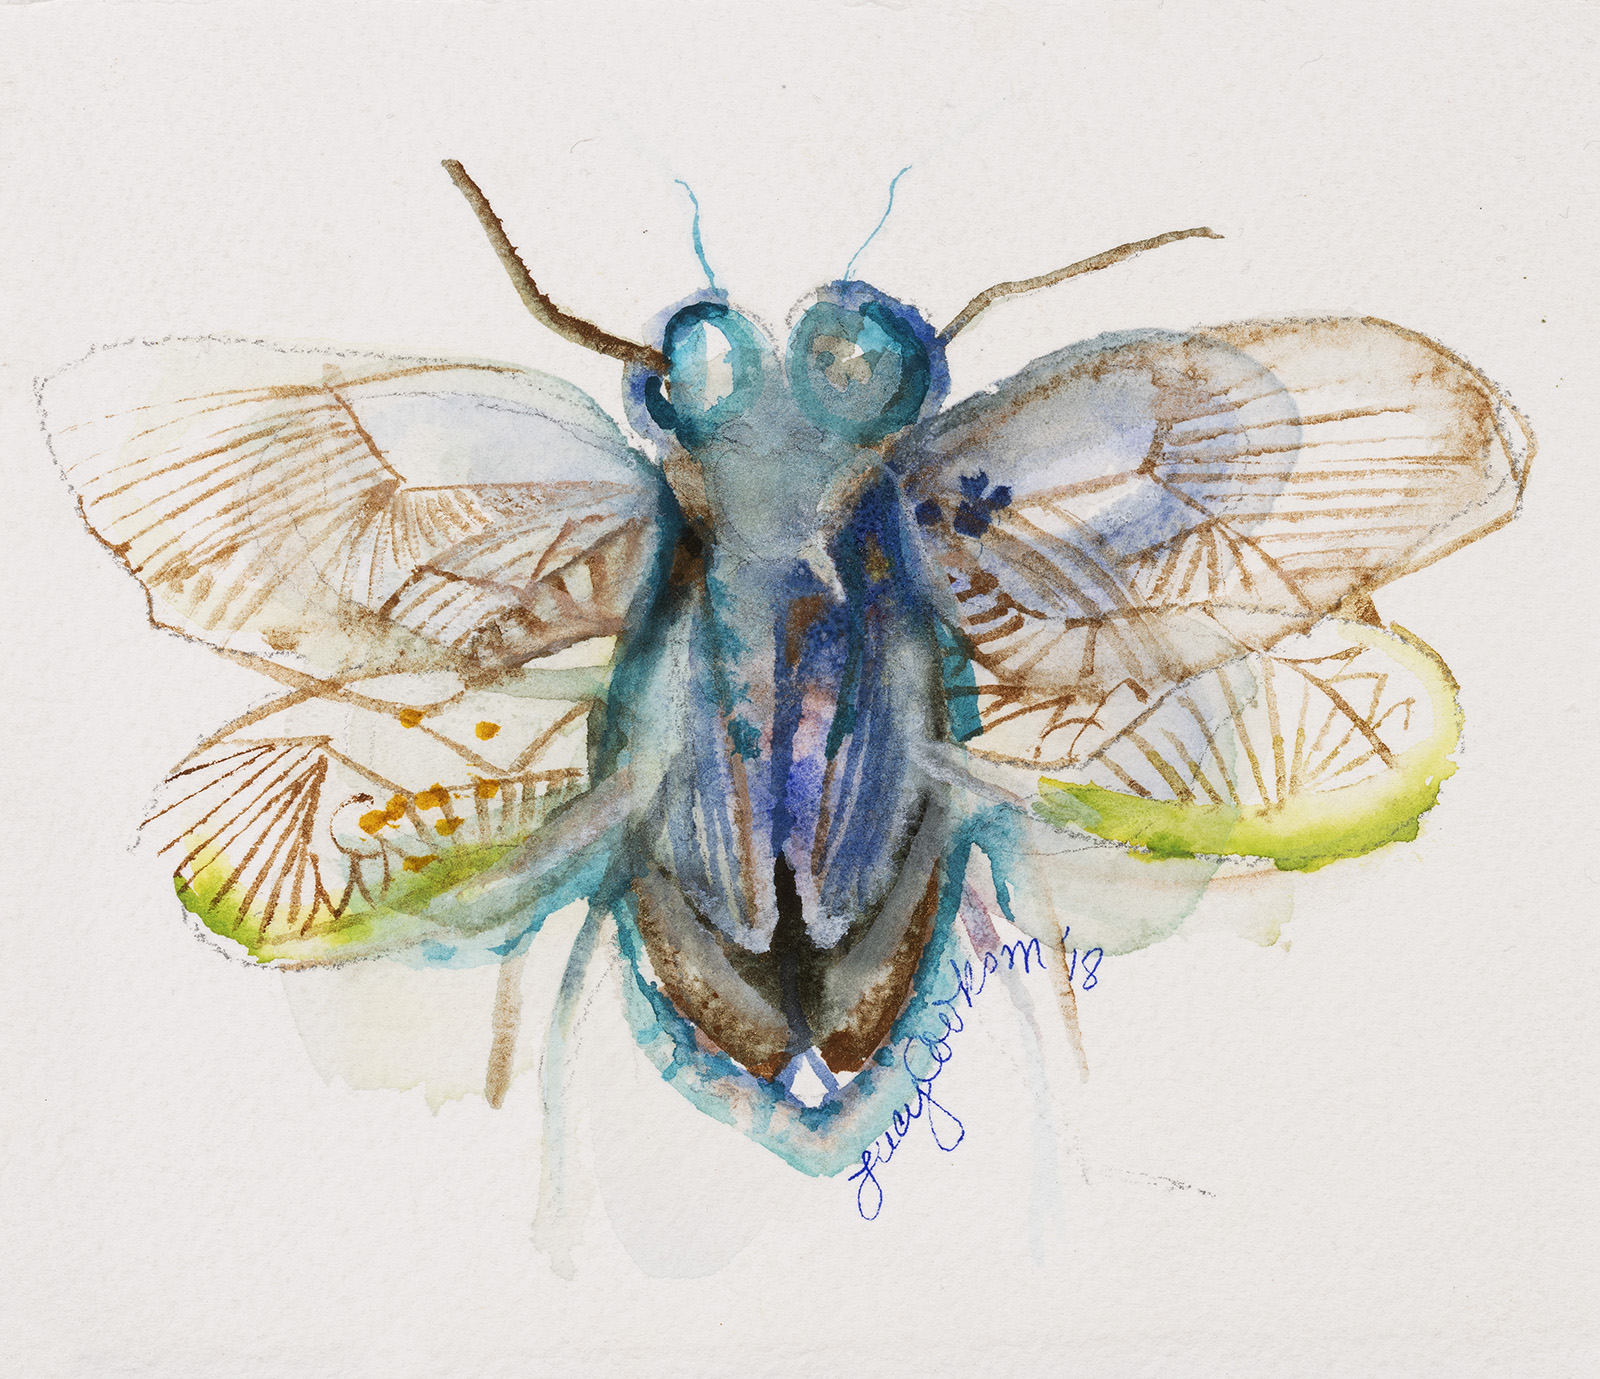 Bug, 2018, Watercolor on paper, 9 x 12 in.